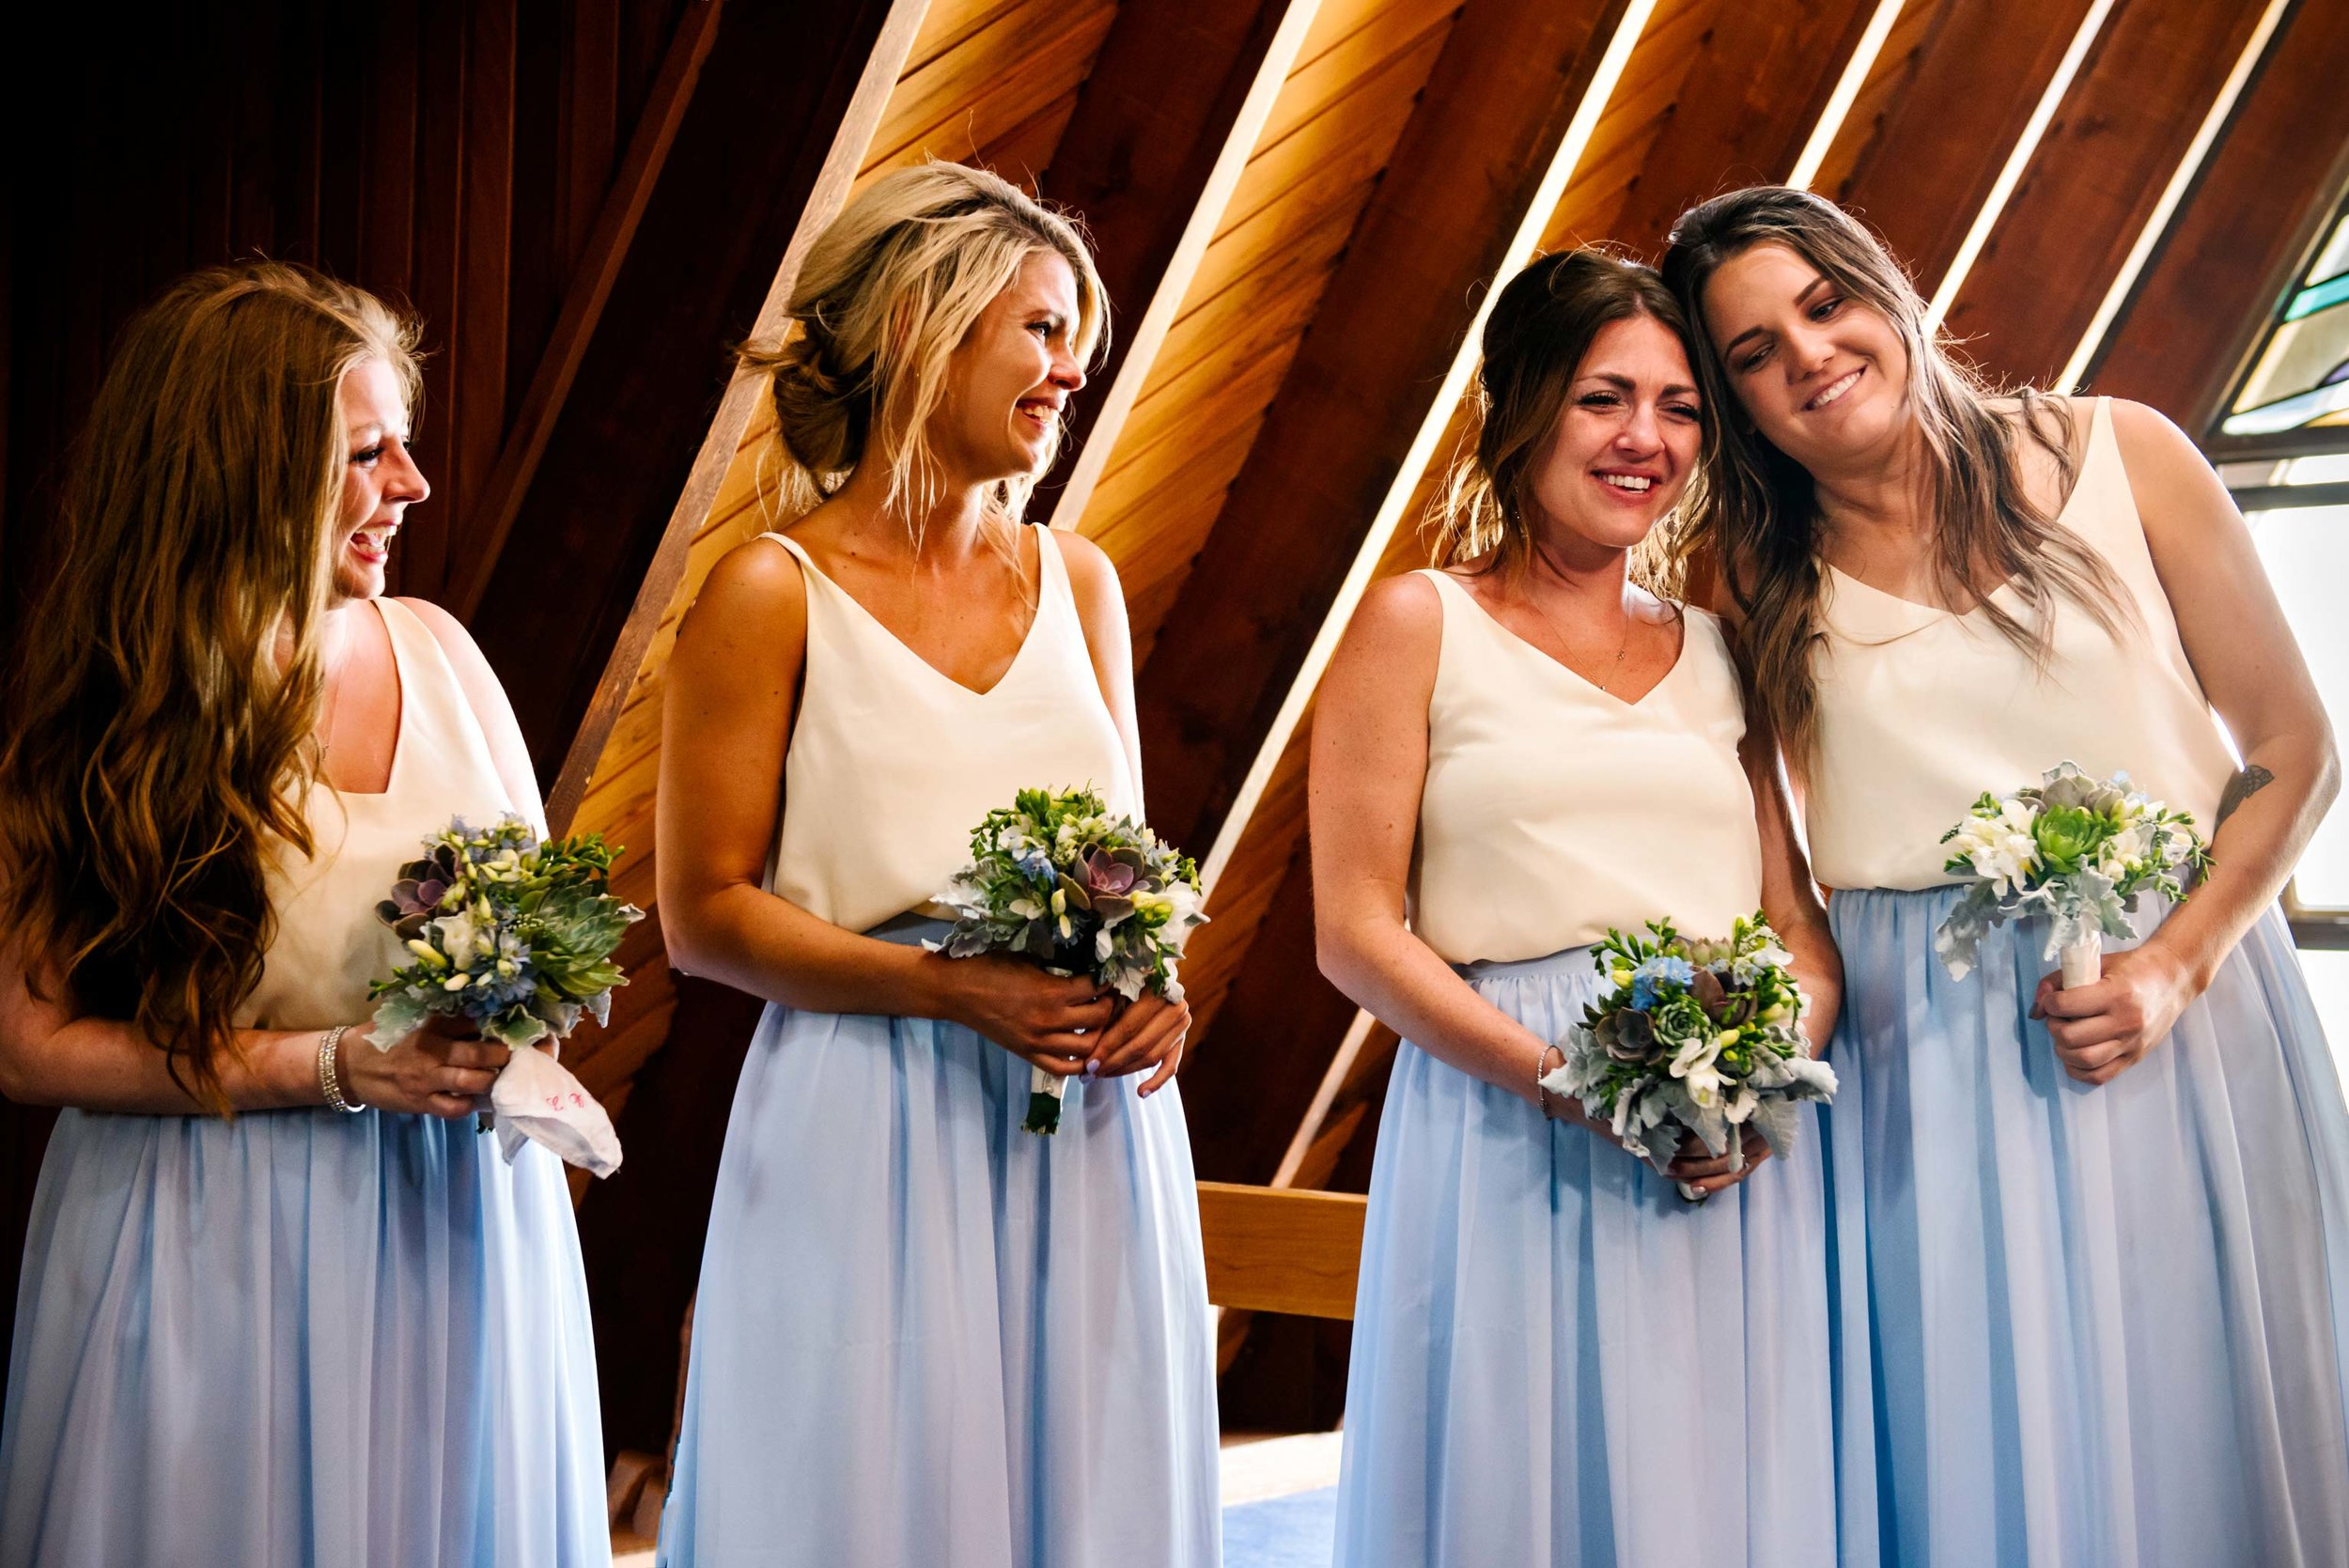 Bridesmaids looking emotional during wedding ceremony